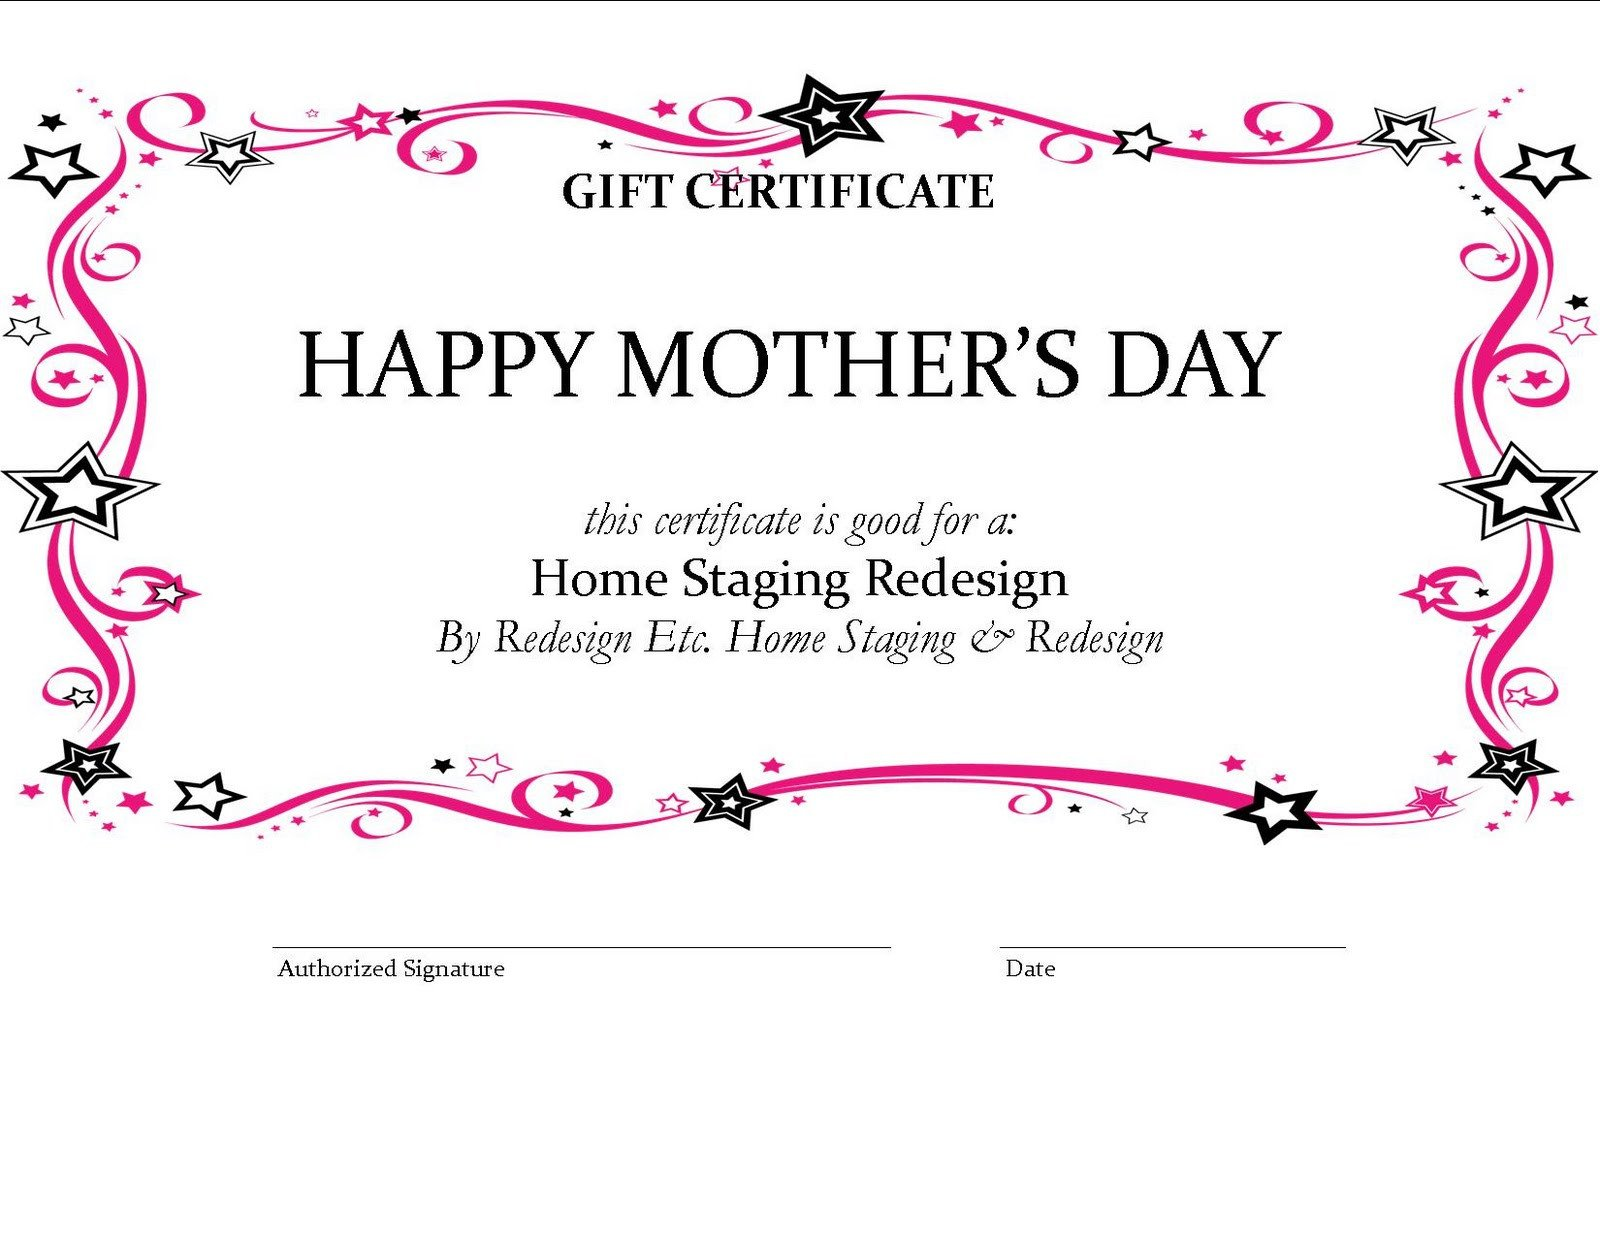 House Cleaning Gift Certificate Template House Cleaning Free House Cleaning Gift Certificate Template